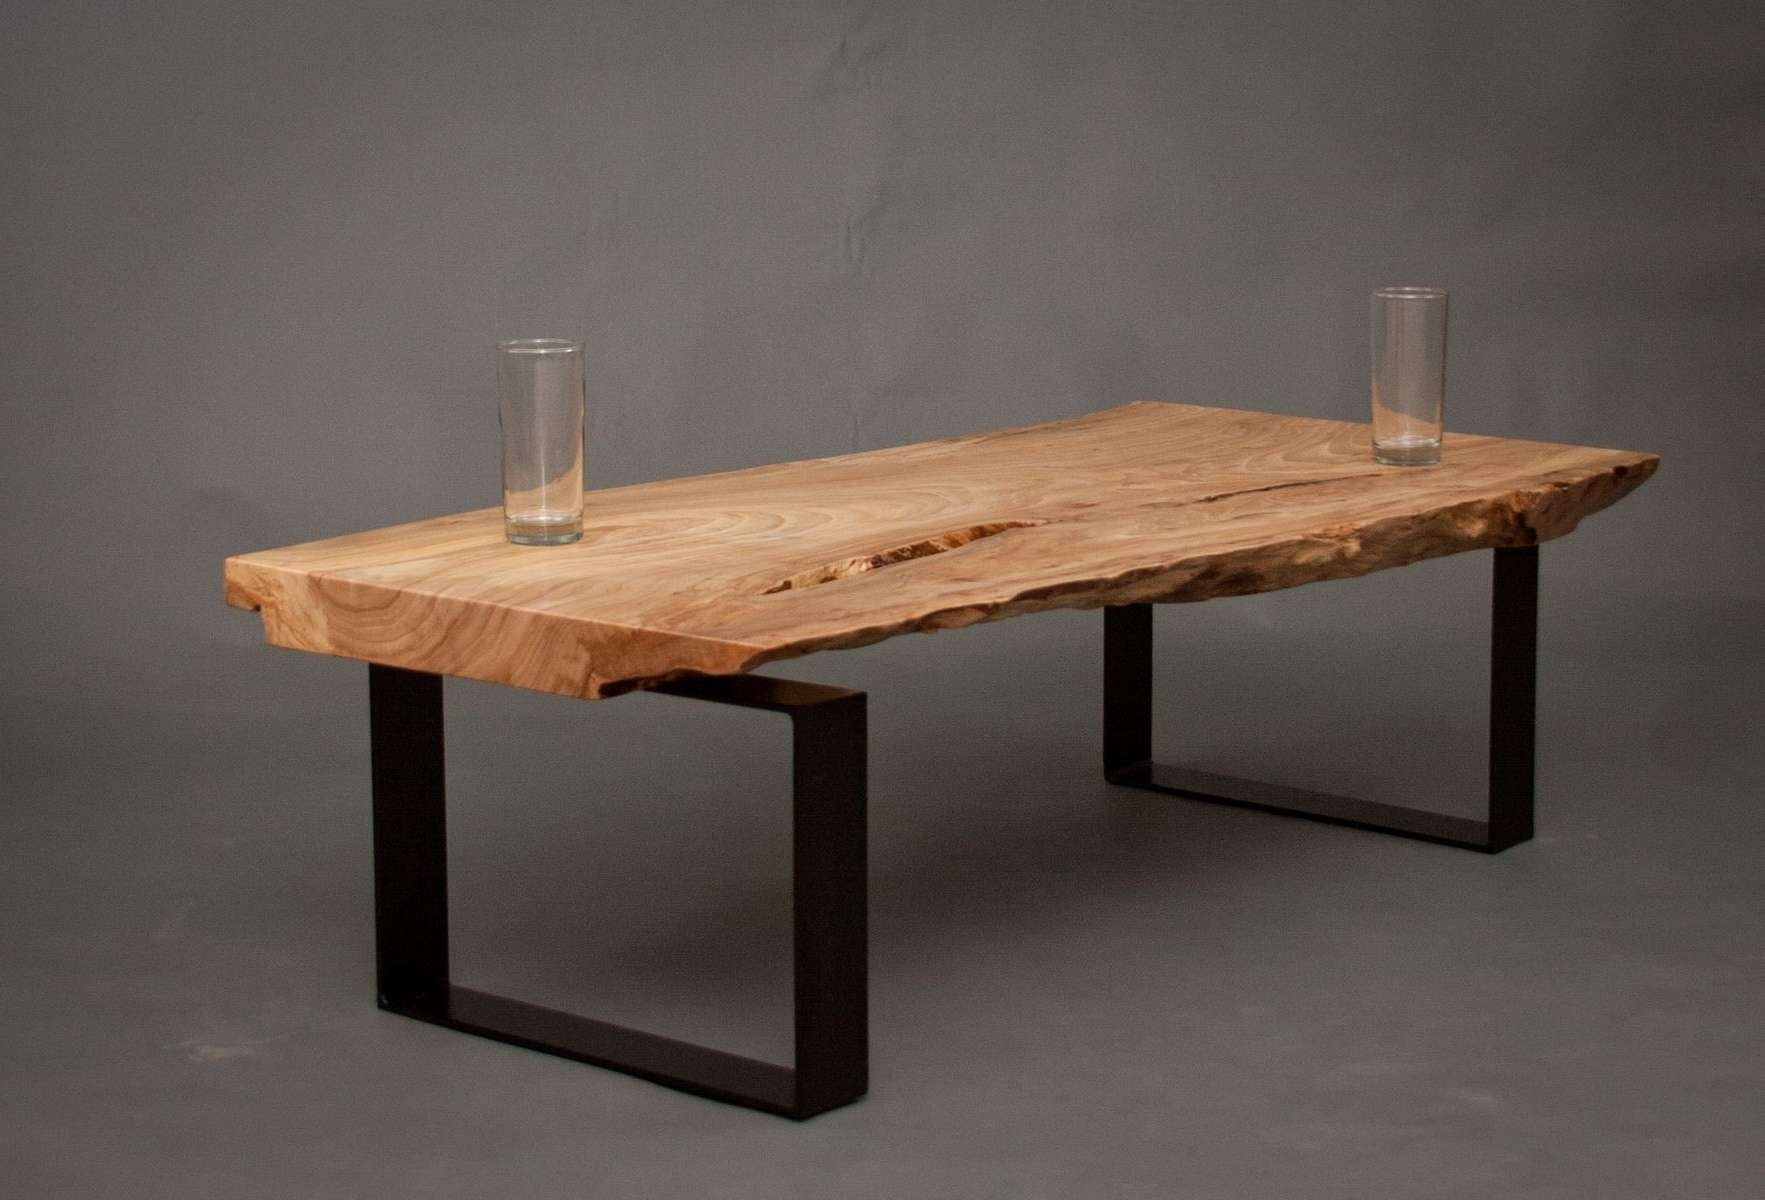 Newest Reclaimed Oak Coffee Tables Intended For Things To Know About Reclaimed Wood Coffee Tables – Chinese (View 2 of 20)